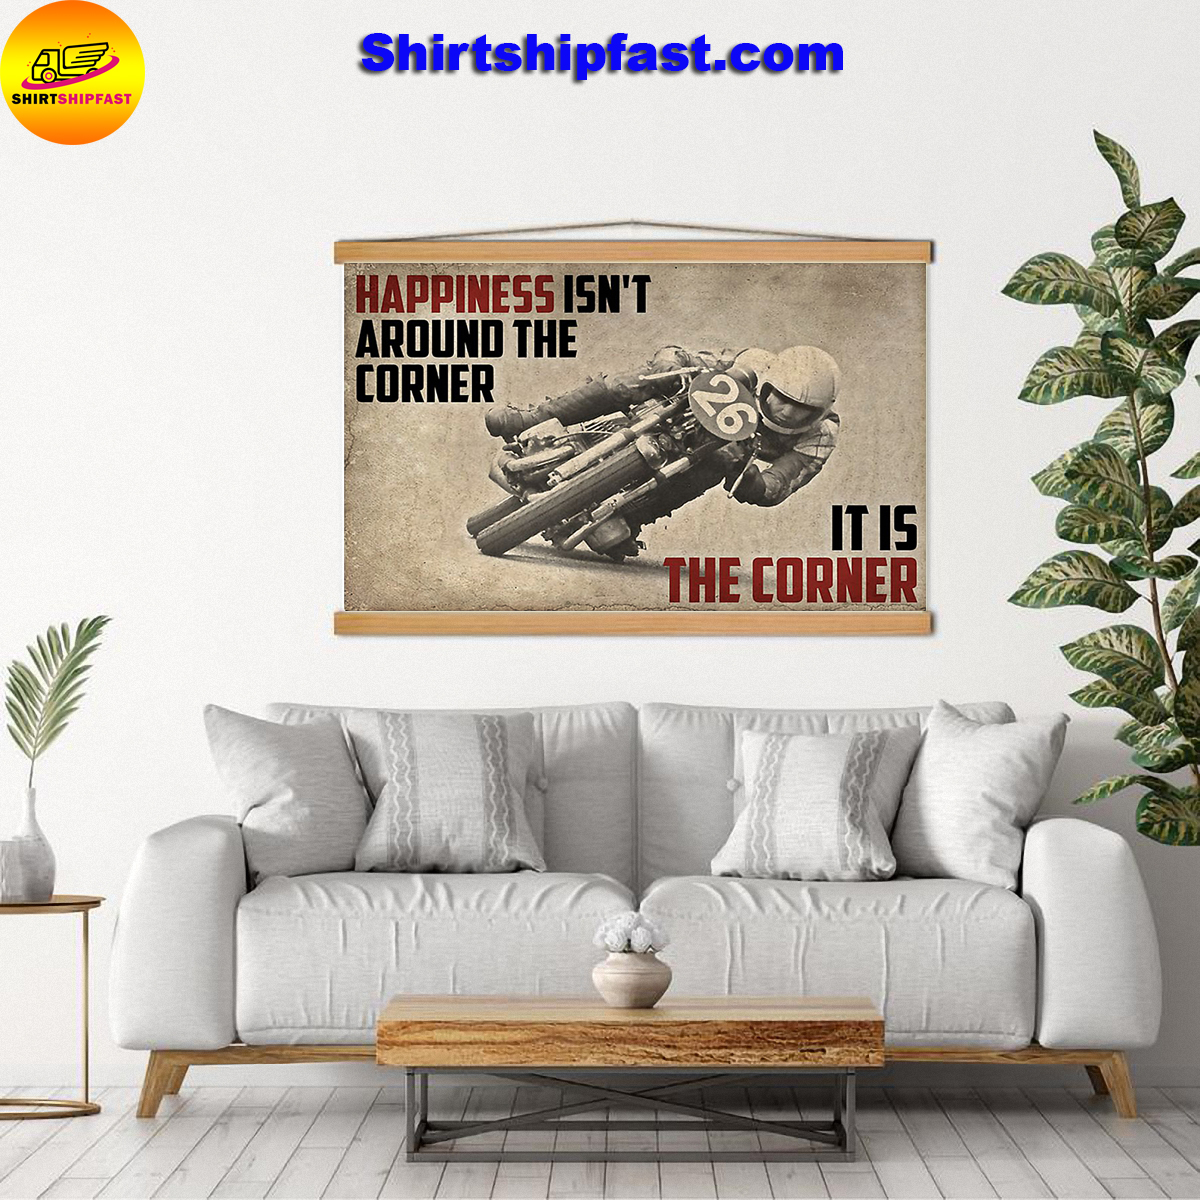 Motorcycle happiness isn't around the corner It is the corner canvas - Picture 3